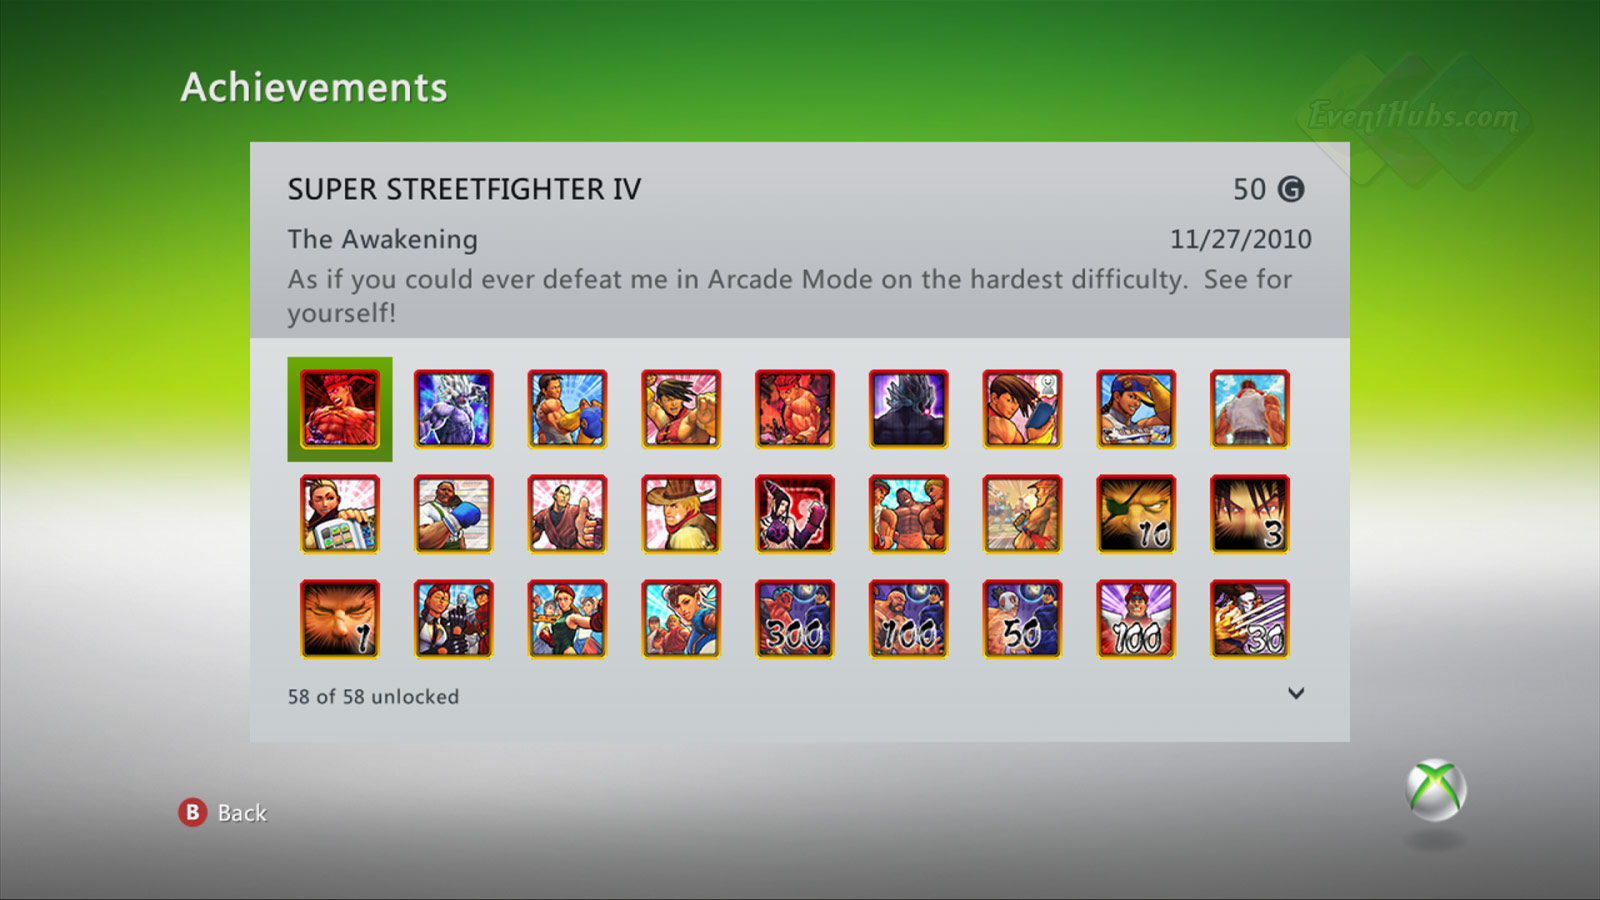 New AE DLC Achievements OFFICIALLY Announced - XboxAchievements com